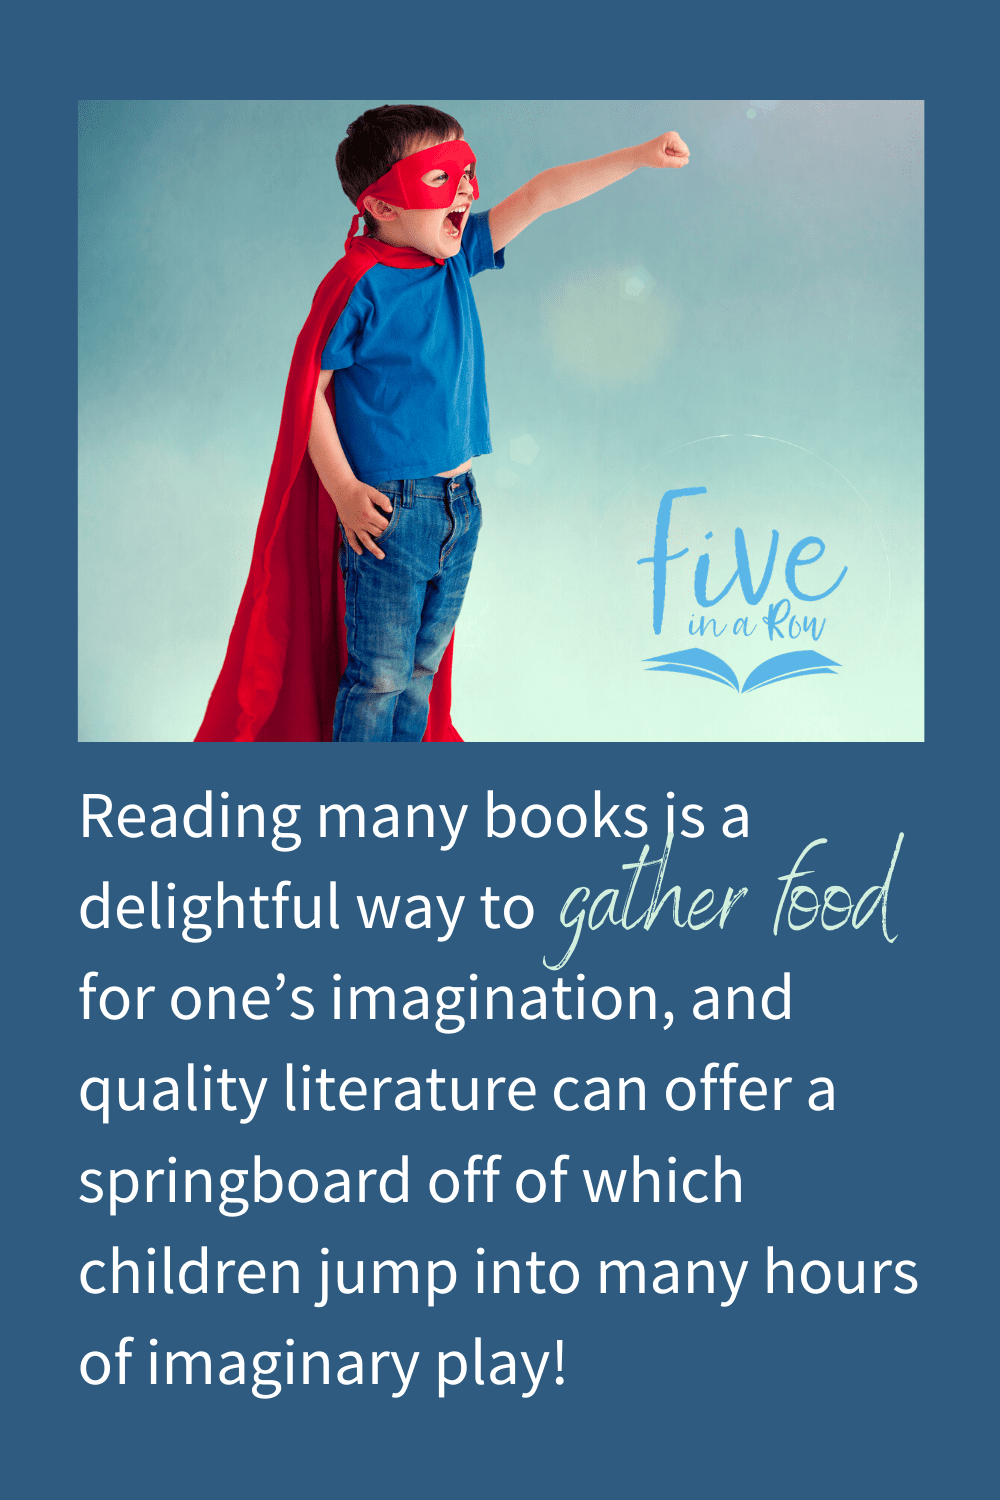 Don't underestimate the power of fostering a child's imagination!